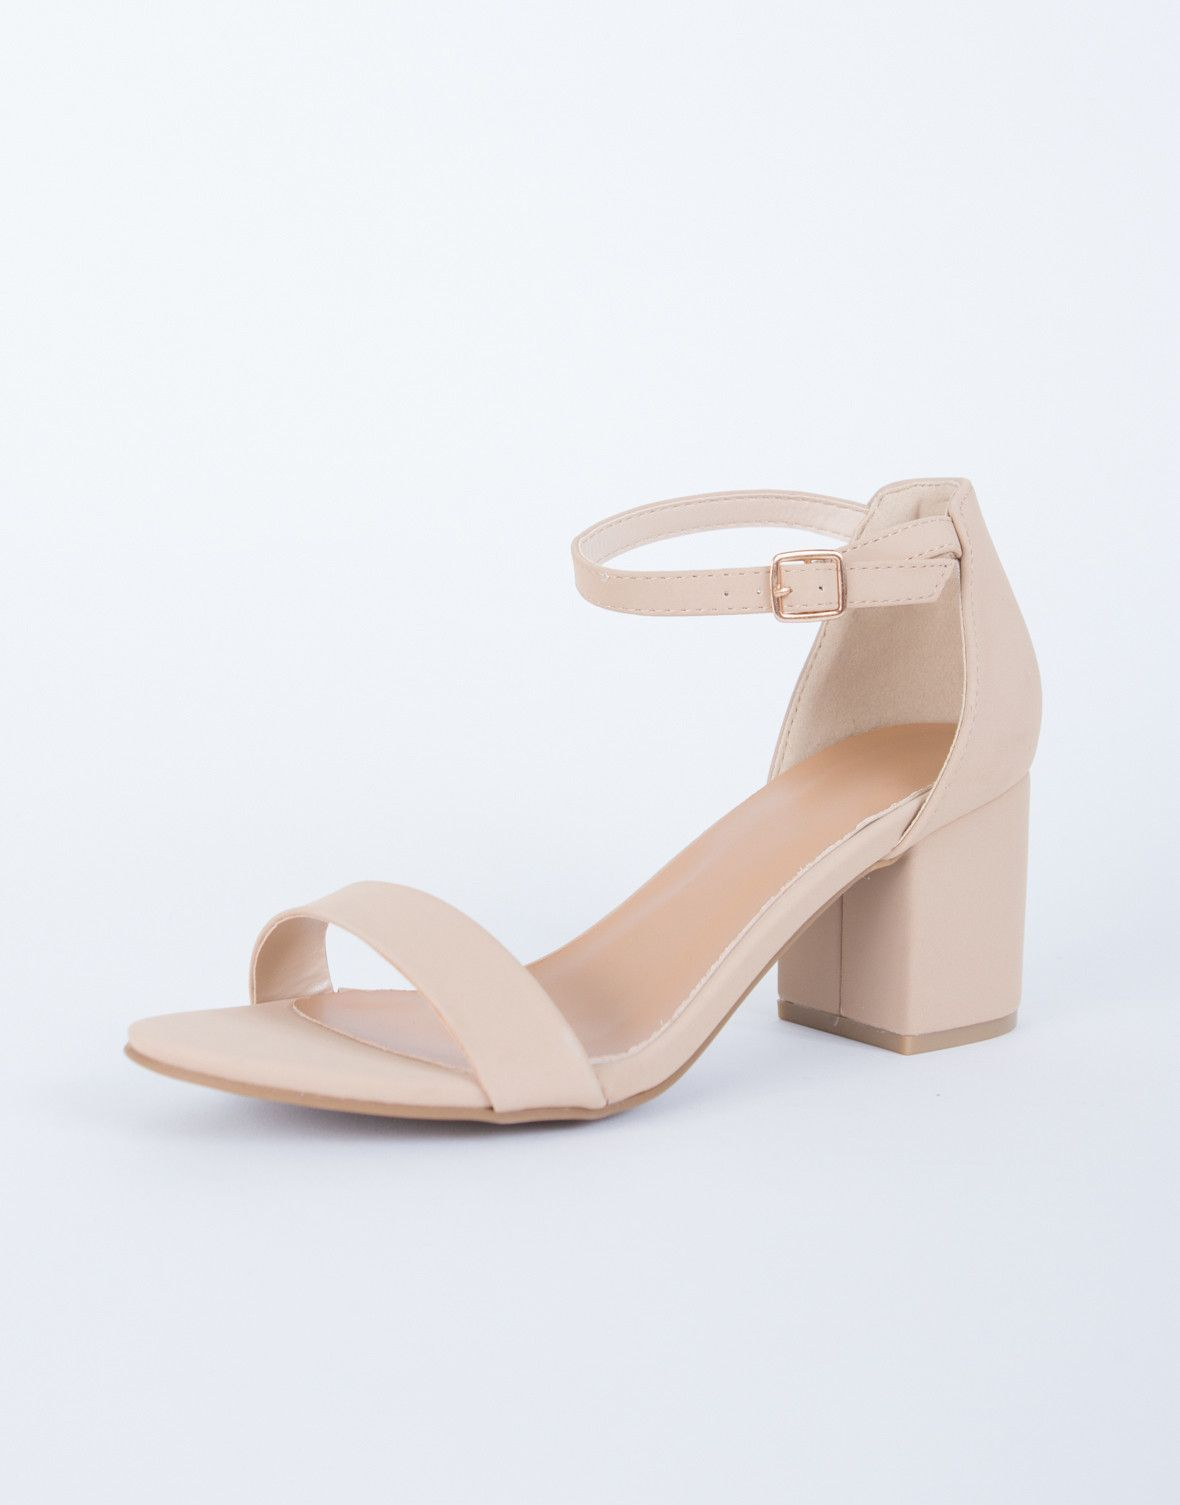 Ankle Strapped Block Heel Sandals | Schuhe